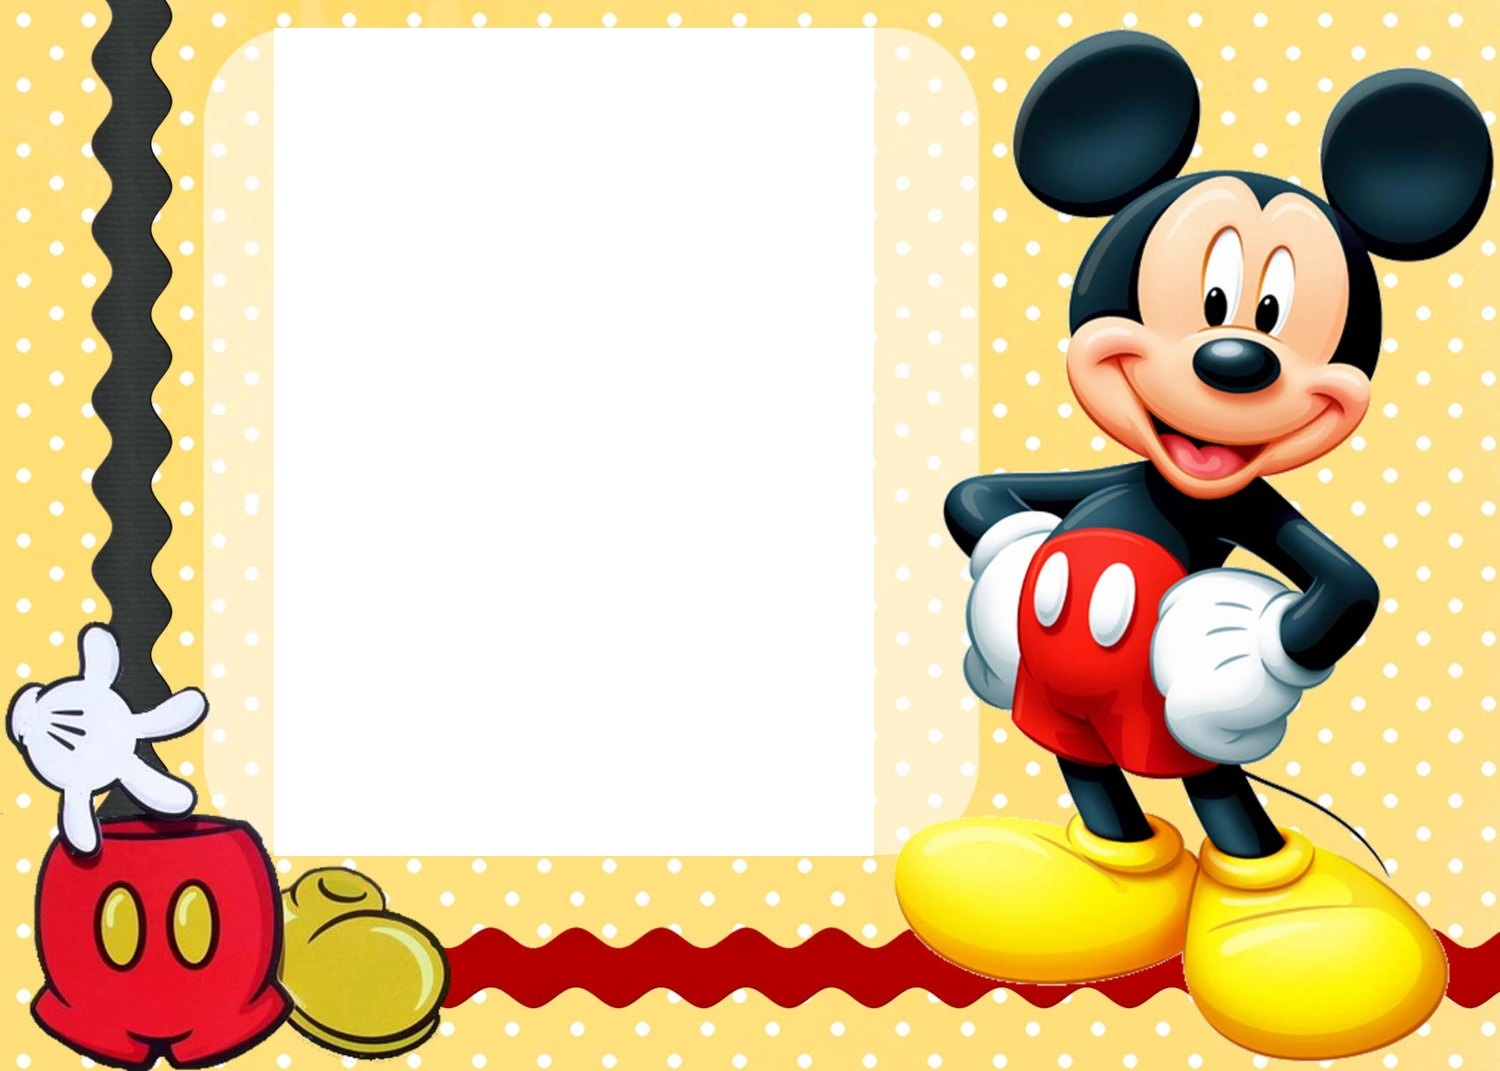 Free Mickey Mouse Template, Download Free Clip Art, Free Clip Art On - Free Printable Mickey Mouse Invitations